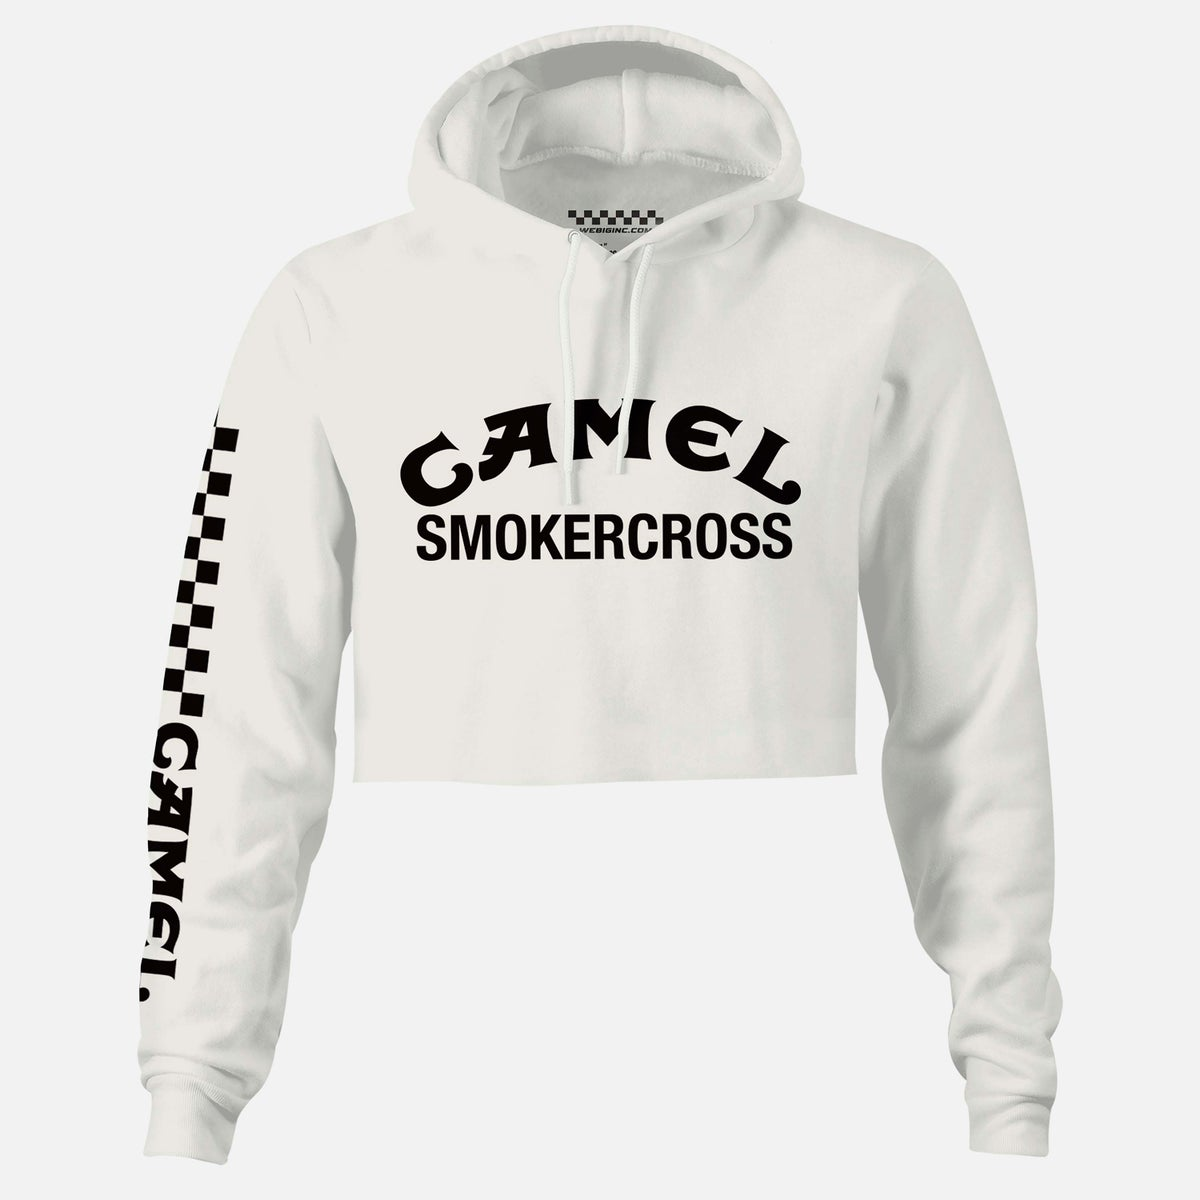 Image of WOMENS CAMEL SMOKERCROSS CROP HOODIE